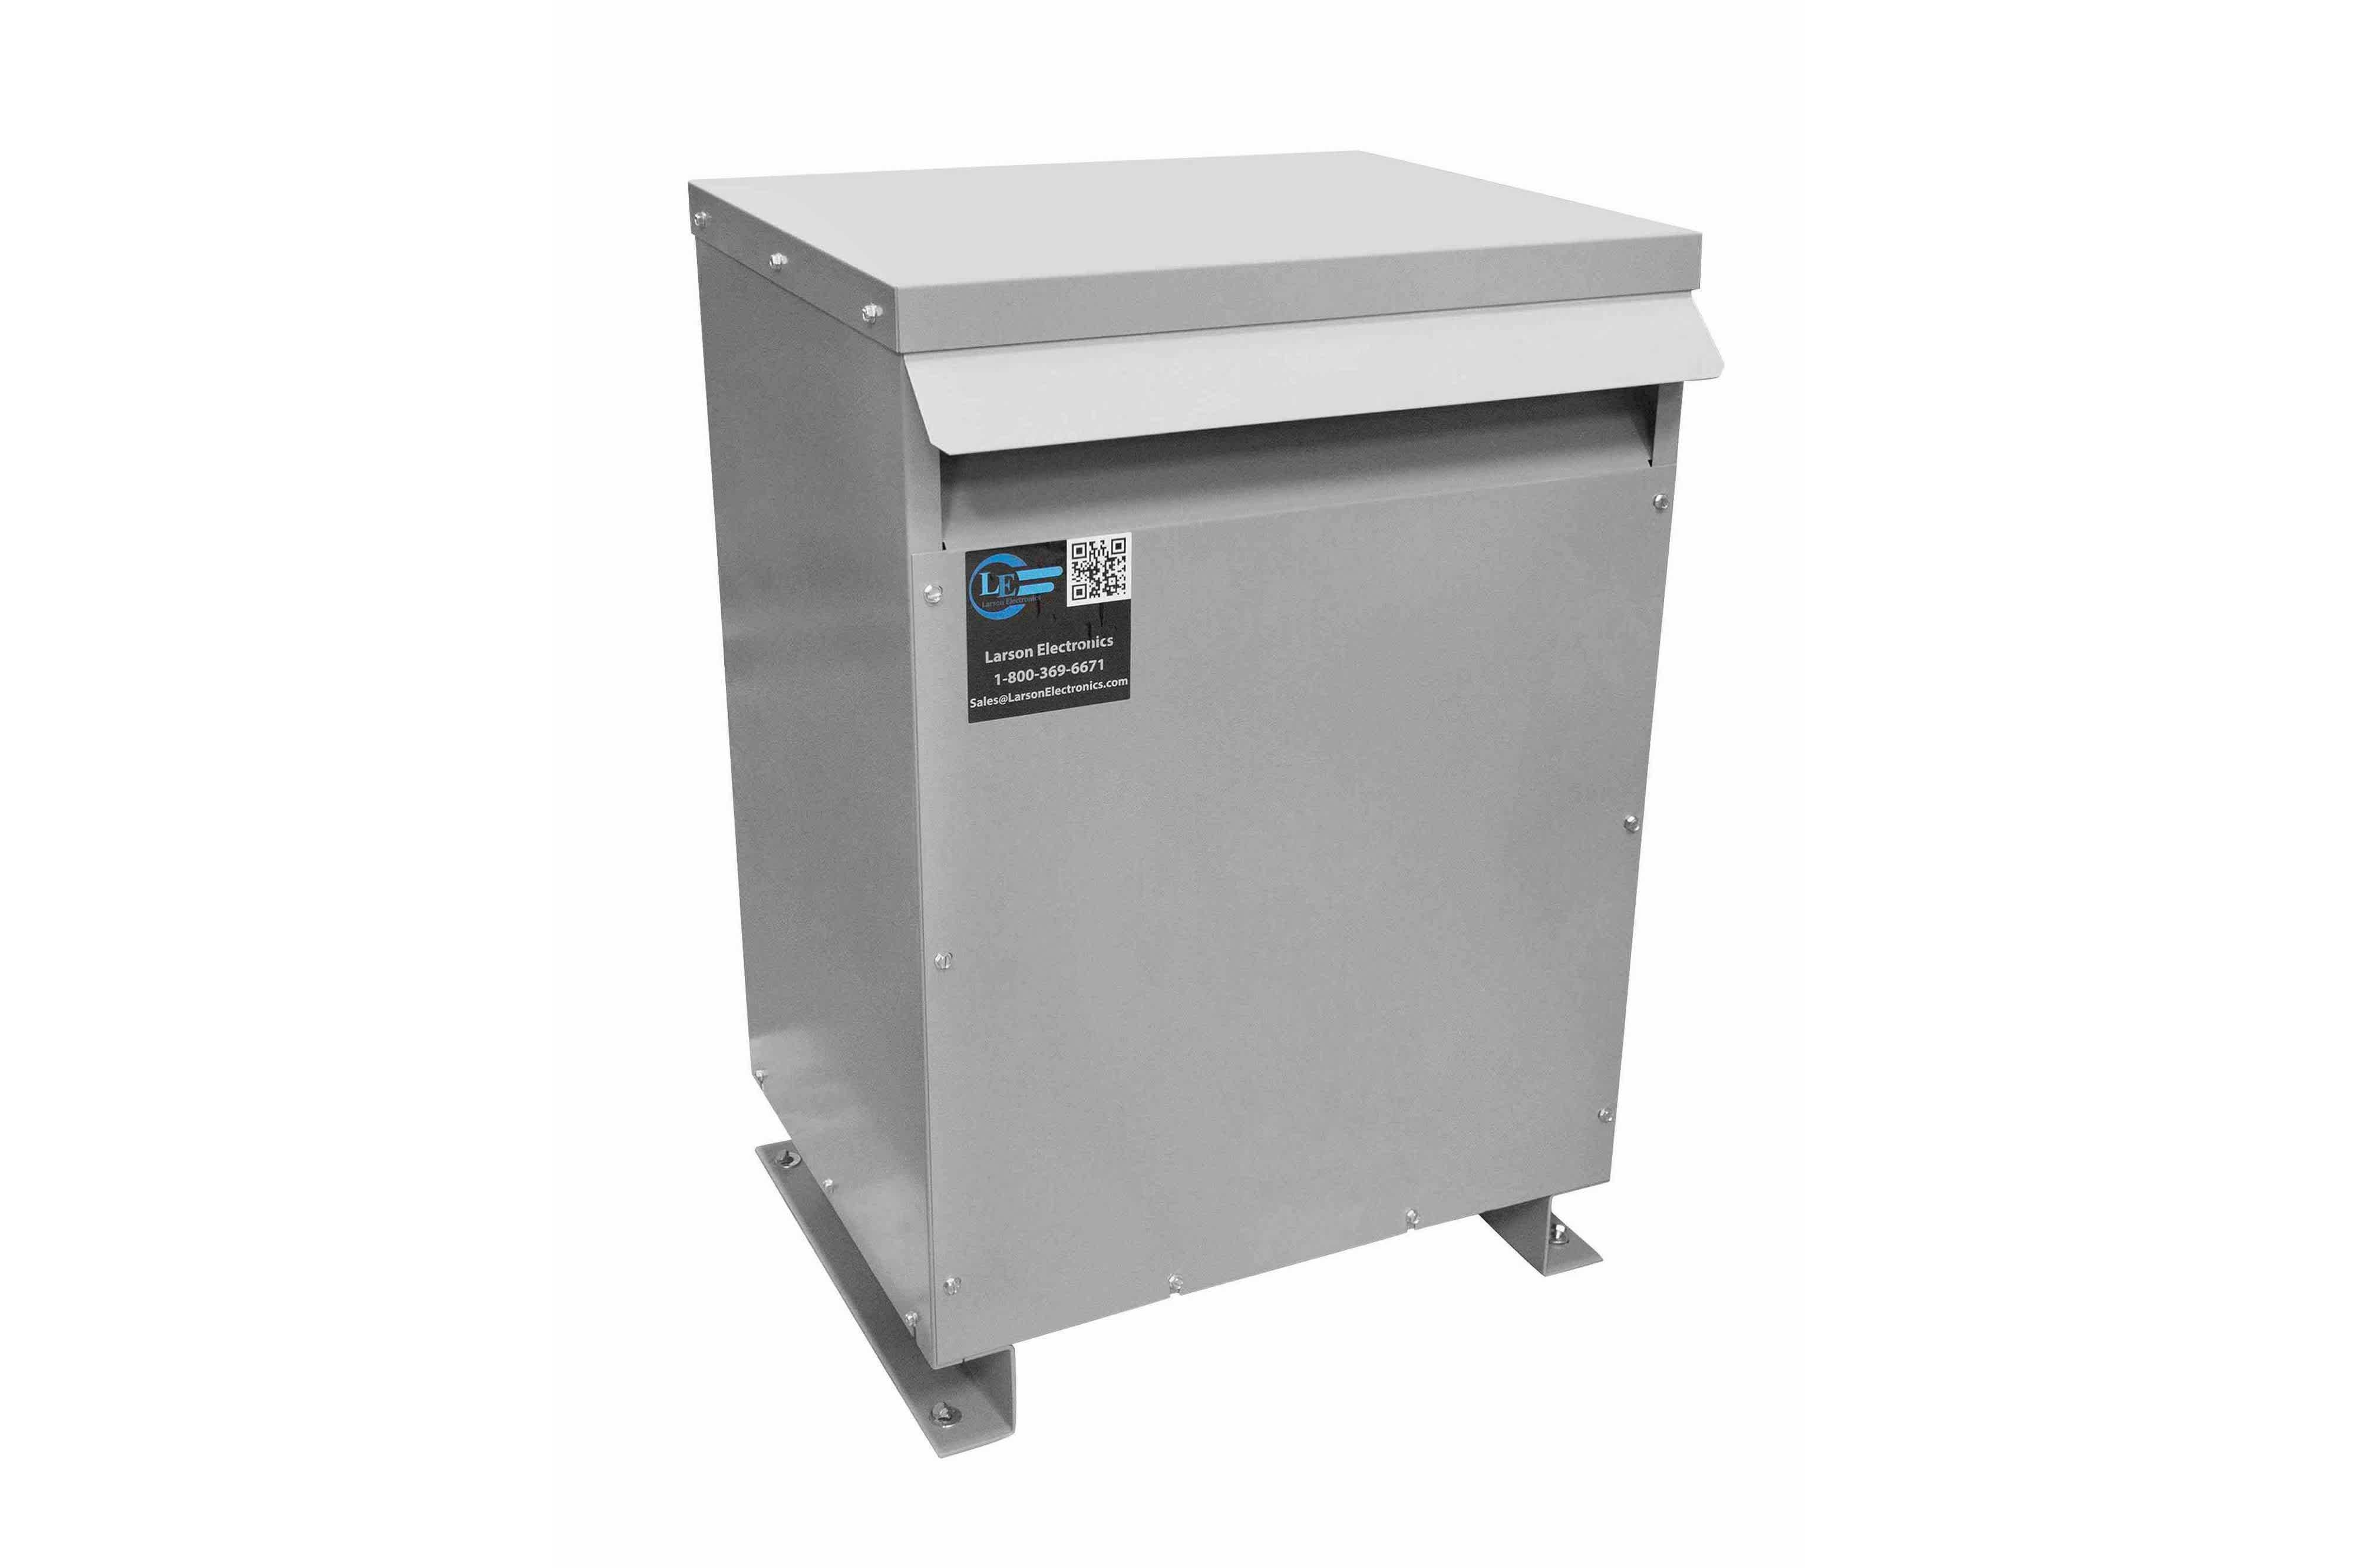 45 kVA 3PH Isolation Transformer, 400V Delta Primary, 600V Delta Secondary, N3R, Ventilated, 60 Hz